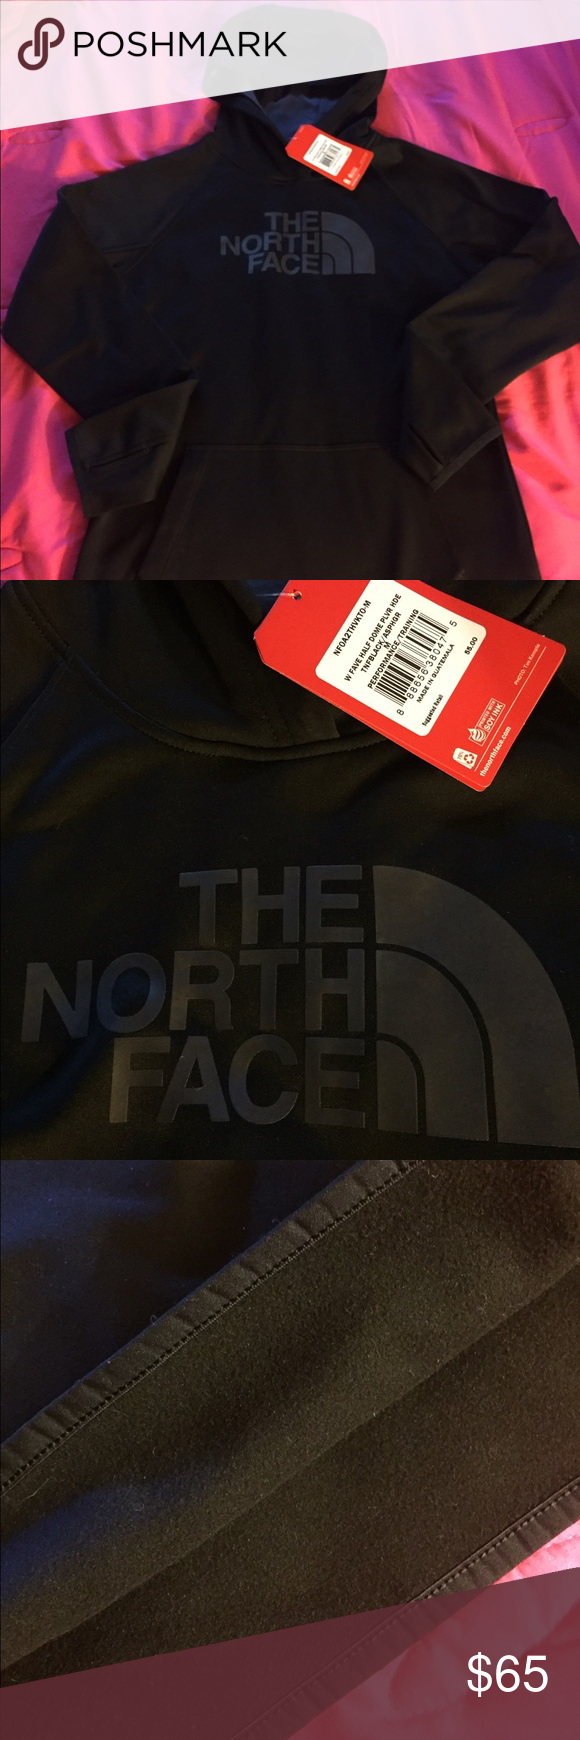 (NWT) Fleece Lined North Face Hoodie Gorgeous Black on Black Fleece lined North Face Hoodie has the arm holes is lined on the inside with fleece extremely warm brand new with Tags is a longer sweatshirt size medium it does cover top of my behind lol ! I just have way to many black hoodies ! 55$ retail I am asking a bit more posh takes 20% so will take a loss no matter what reasonable offers considered! please feel free to ask any questions I personally guarantee all of my items are as…